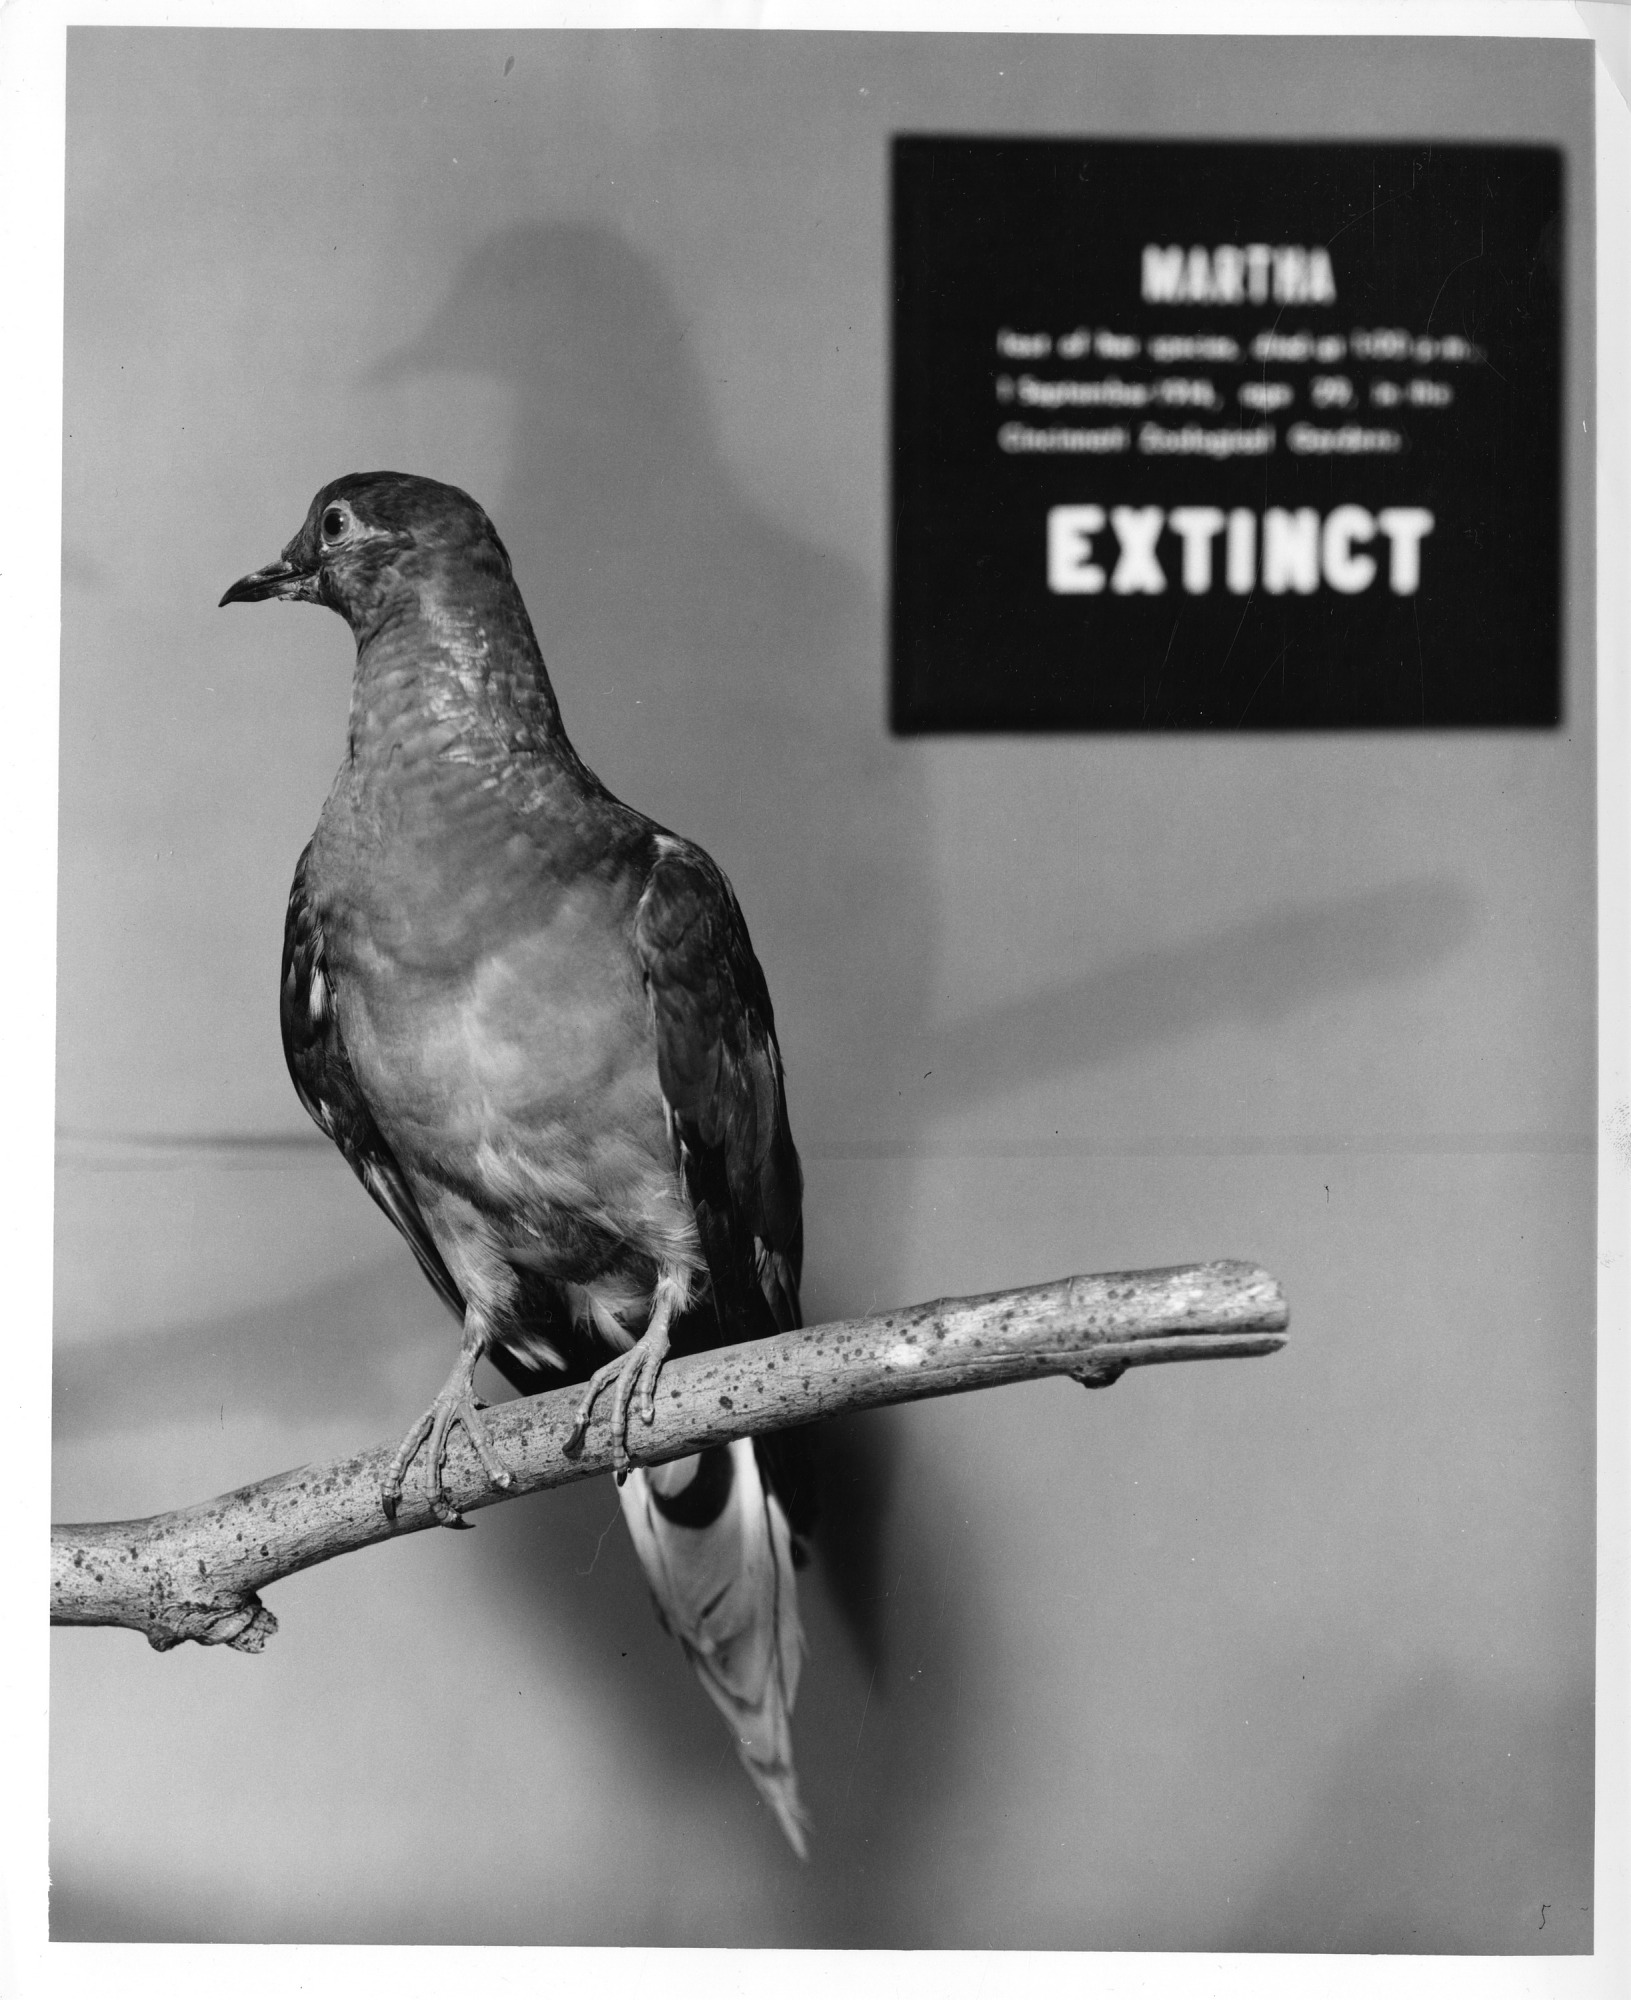 images for Martha, a Passenger Pigeon